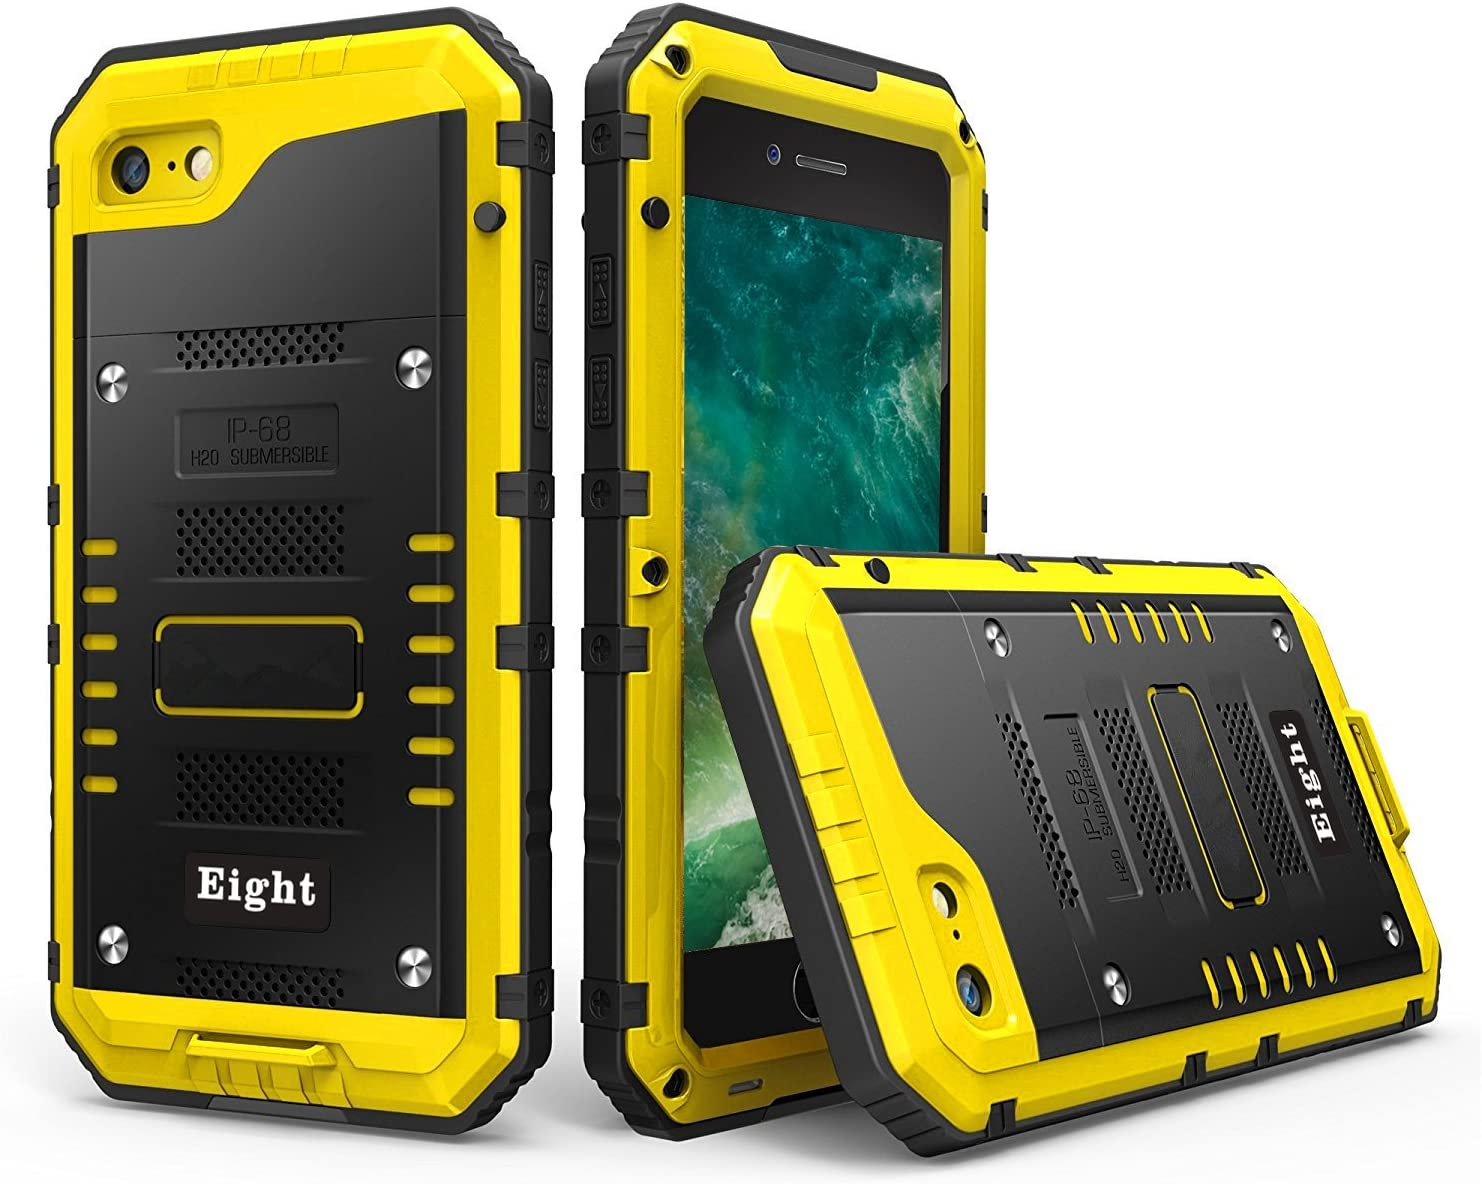 iPhone SE (2020) / 8 / 7 Waterproof Case Heavy Duty with Built-in Screen Full Body Protective Shockproof Drop proof Hybrid Hard Cover Military Outdoor Sport for Apple iPhone SE (2020) / 8 / 7 (Yellow)